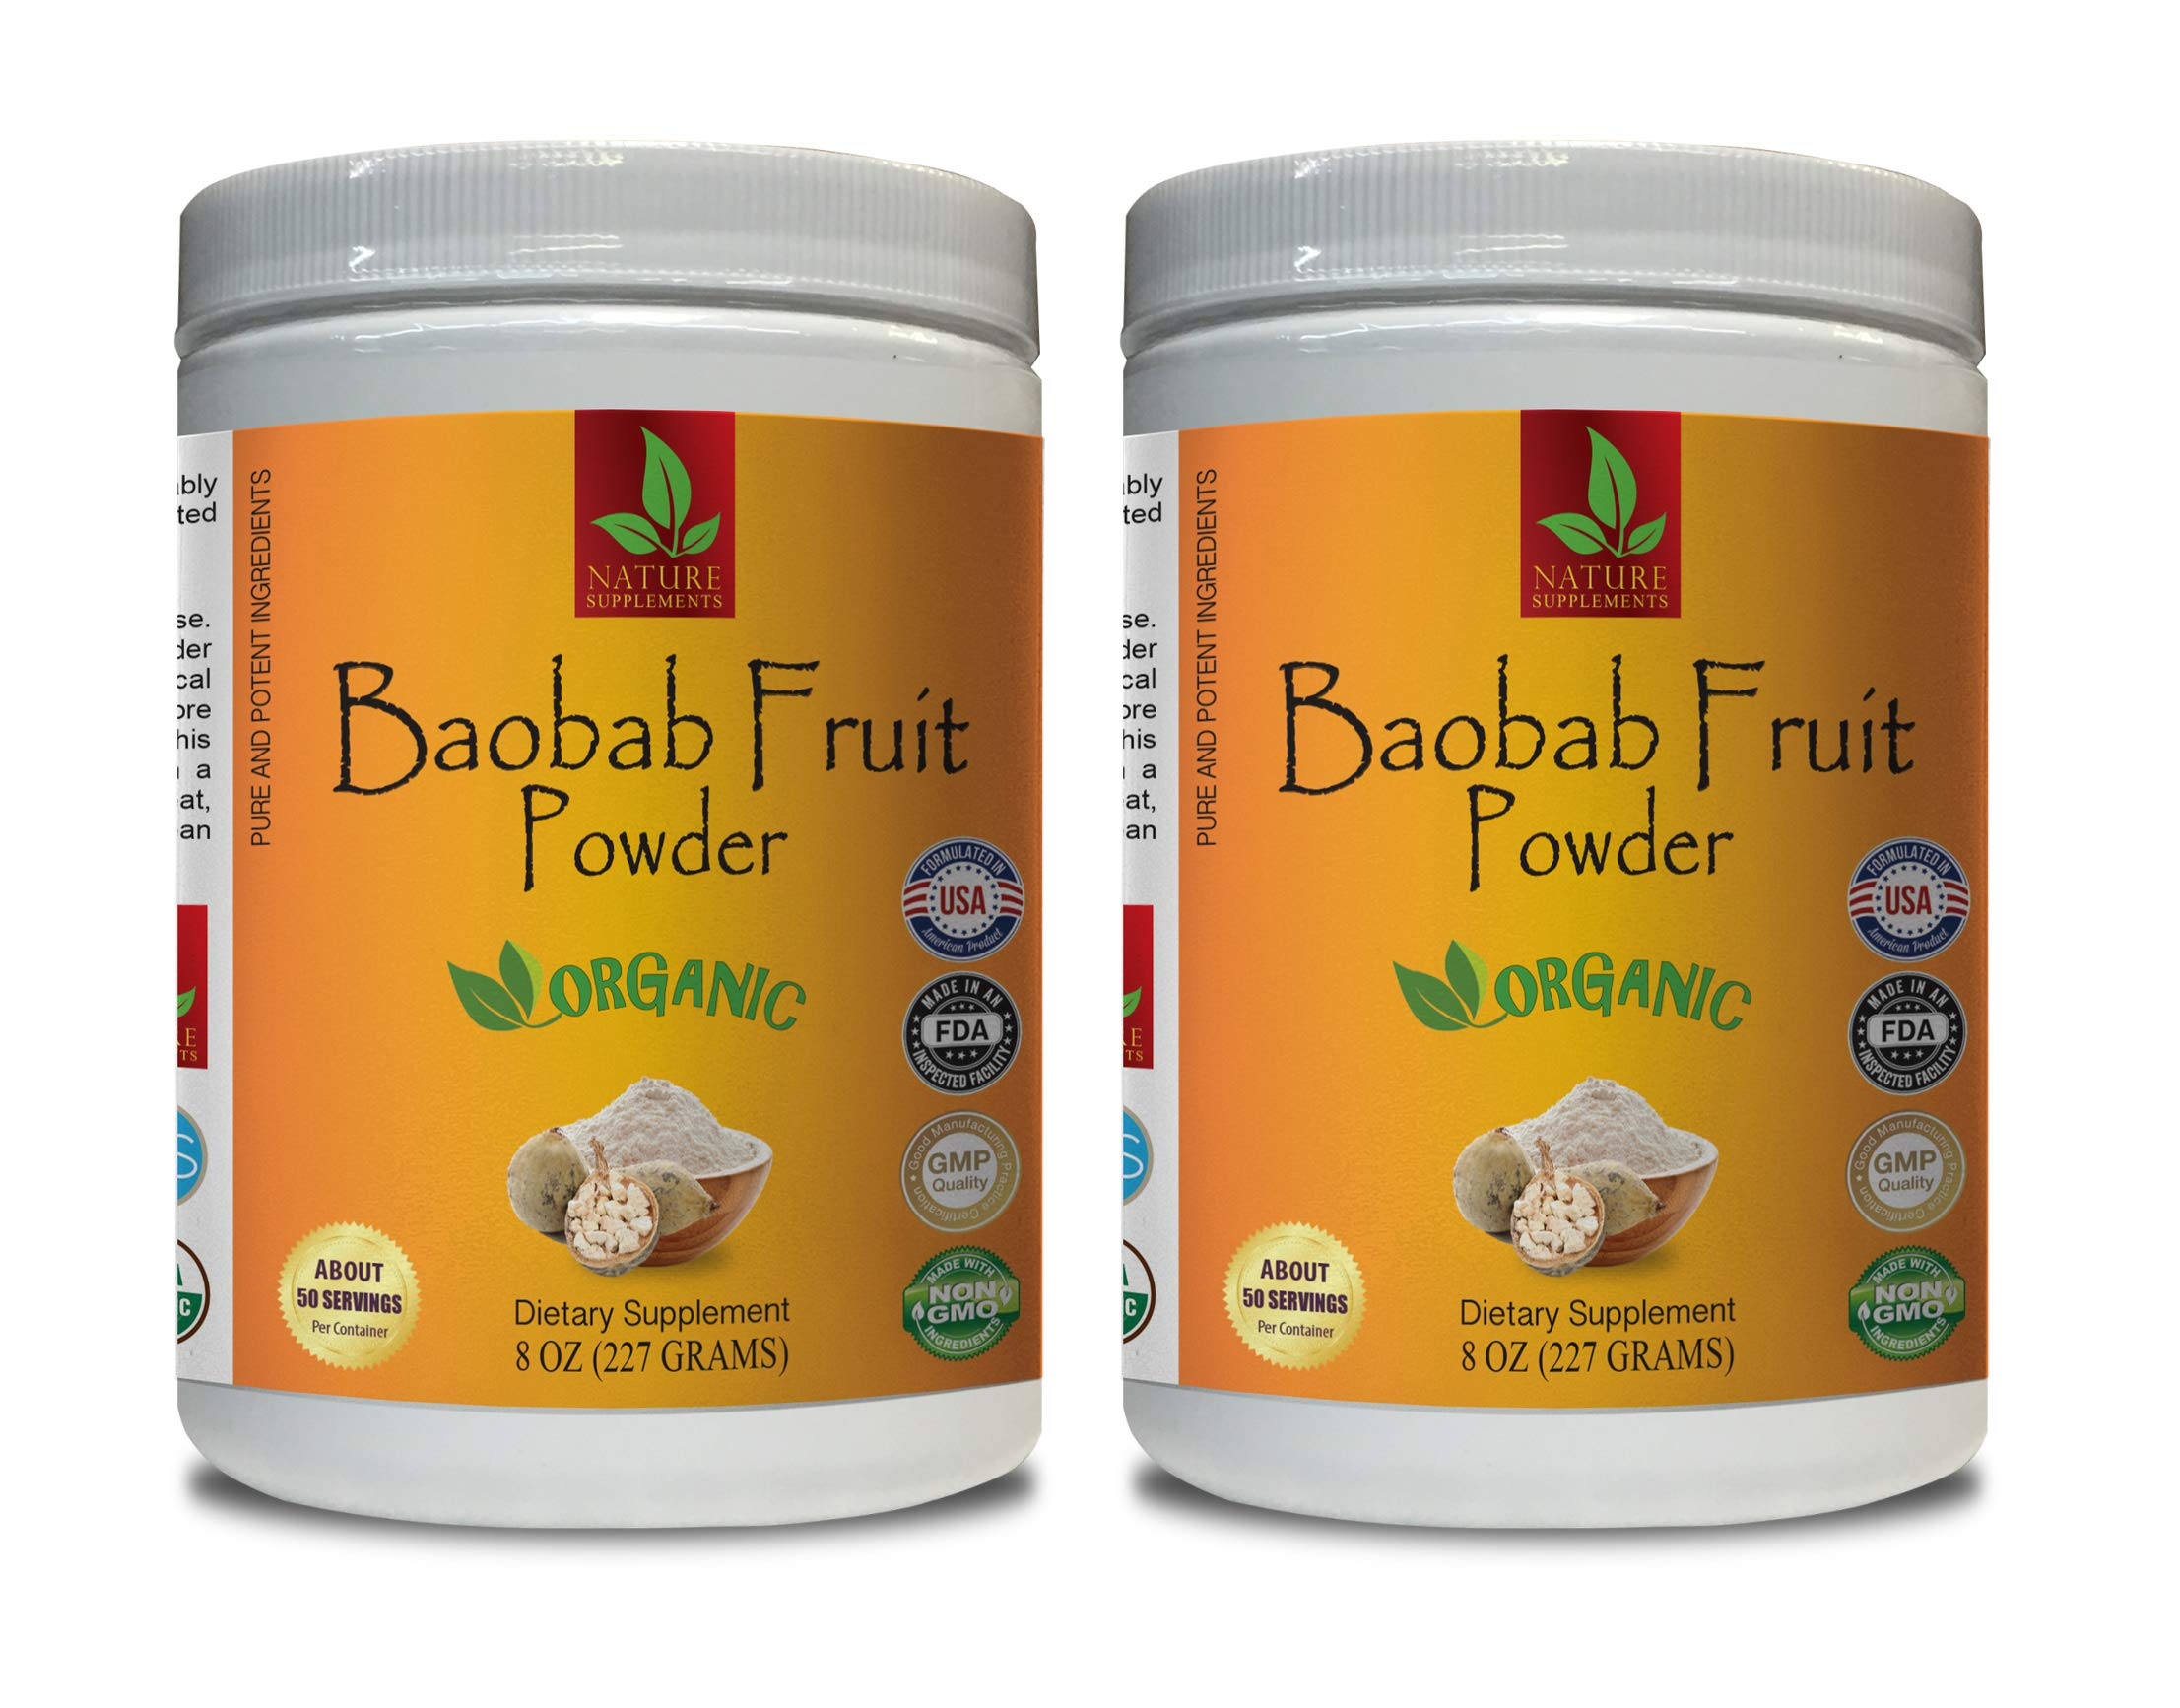 Immune Support and multivitamin - Baobab Fruit Organic Powder - Pure and Potent Ingredients - Baobab Boost Powder - 2 Cans 16 OZ (100 Servings)